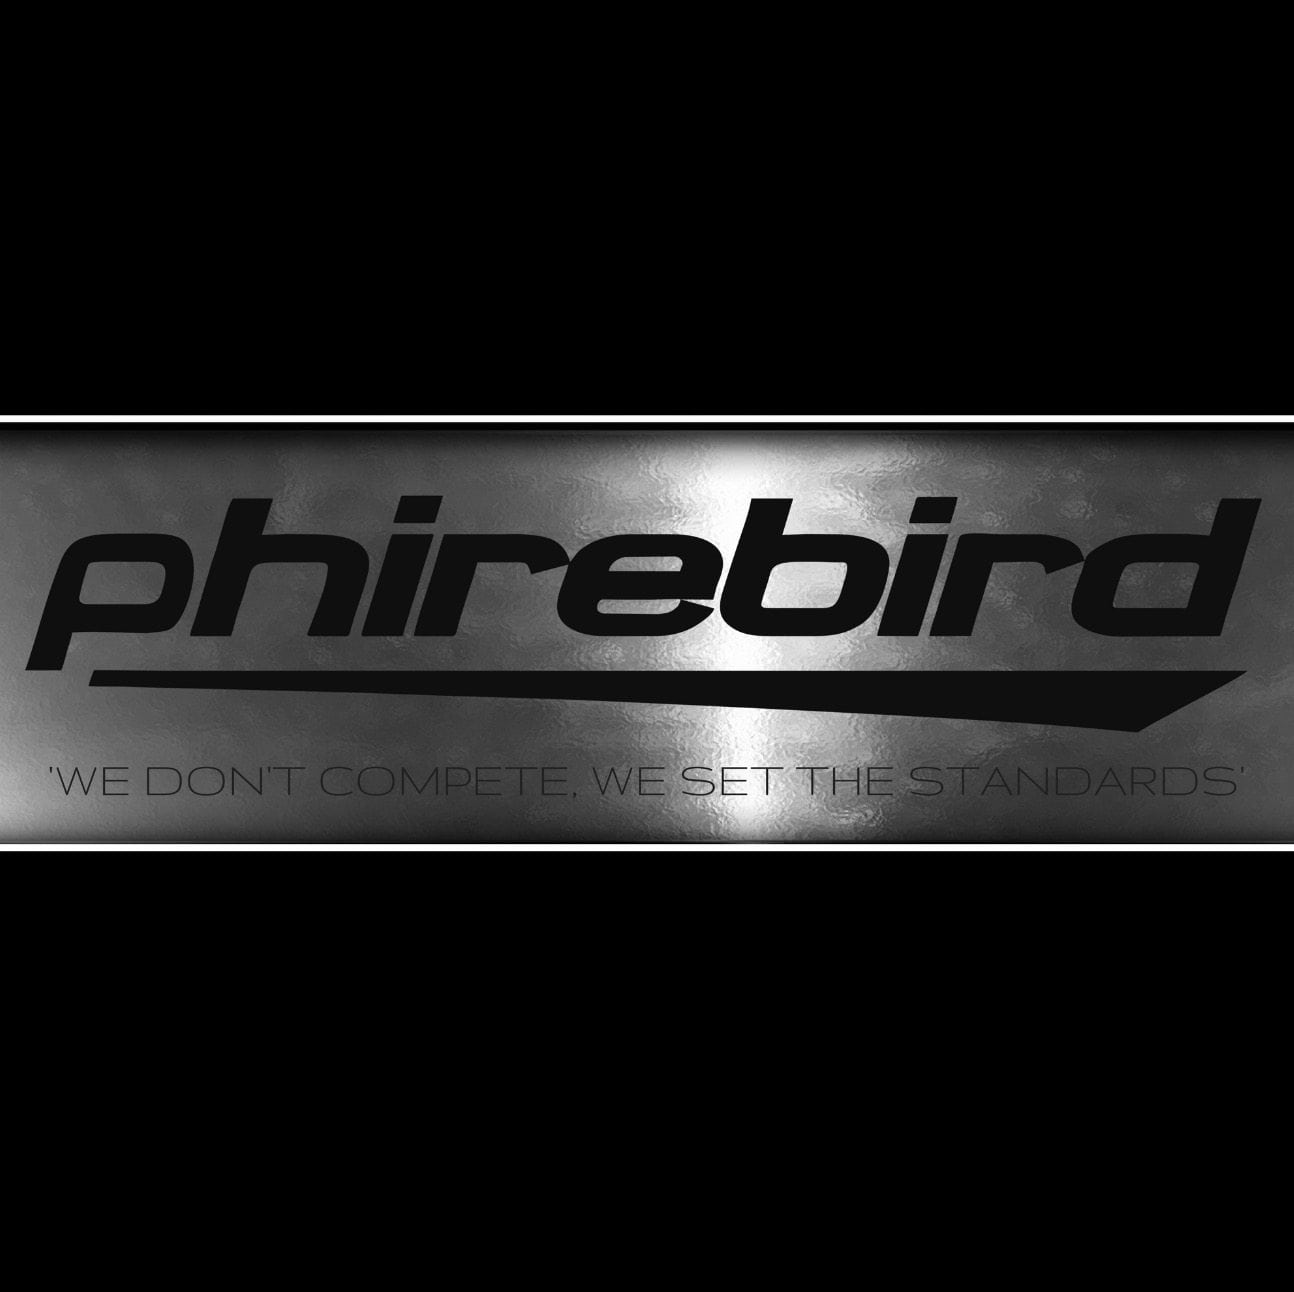 We Dont Compete We Set The Standards Phirebird BMX